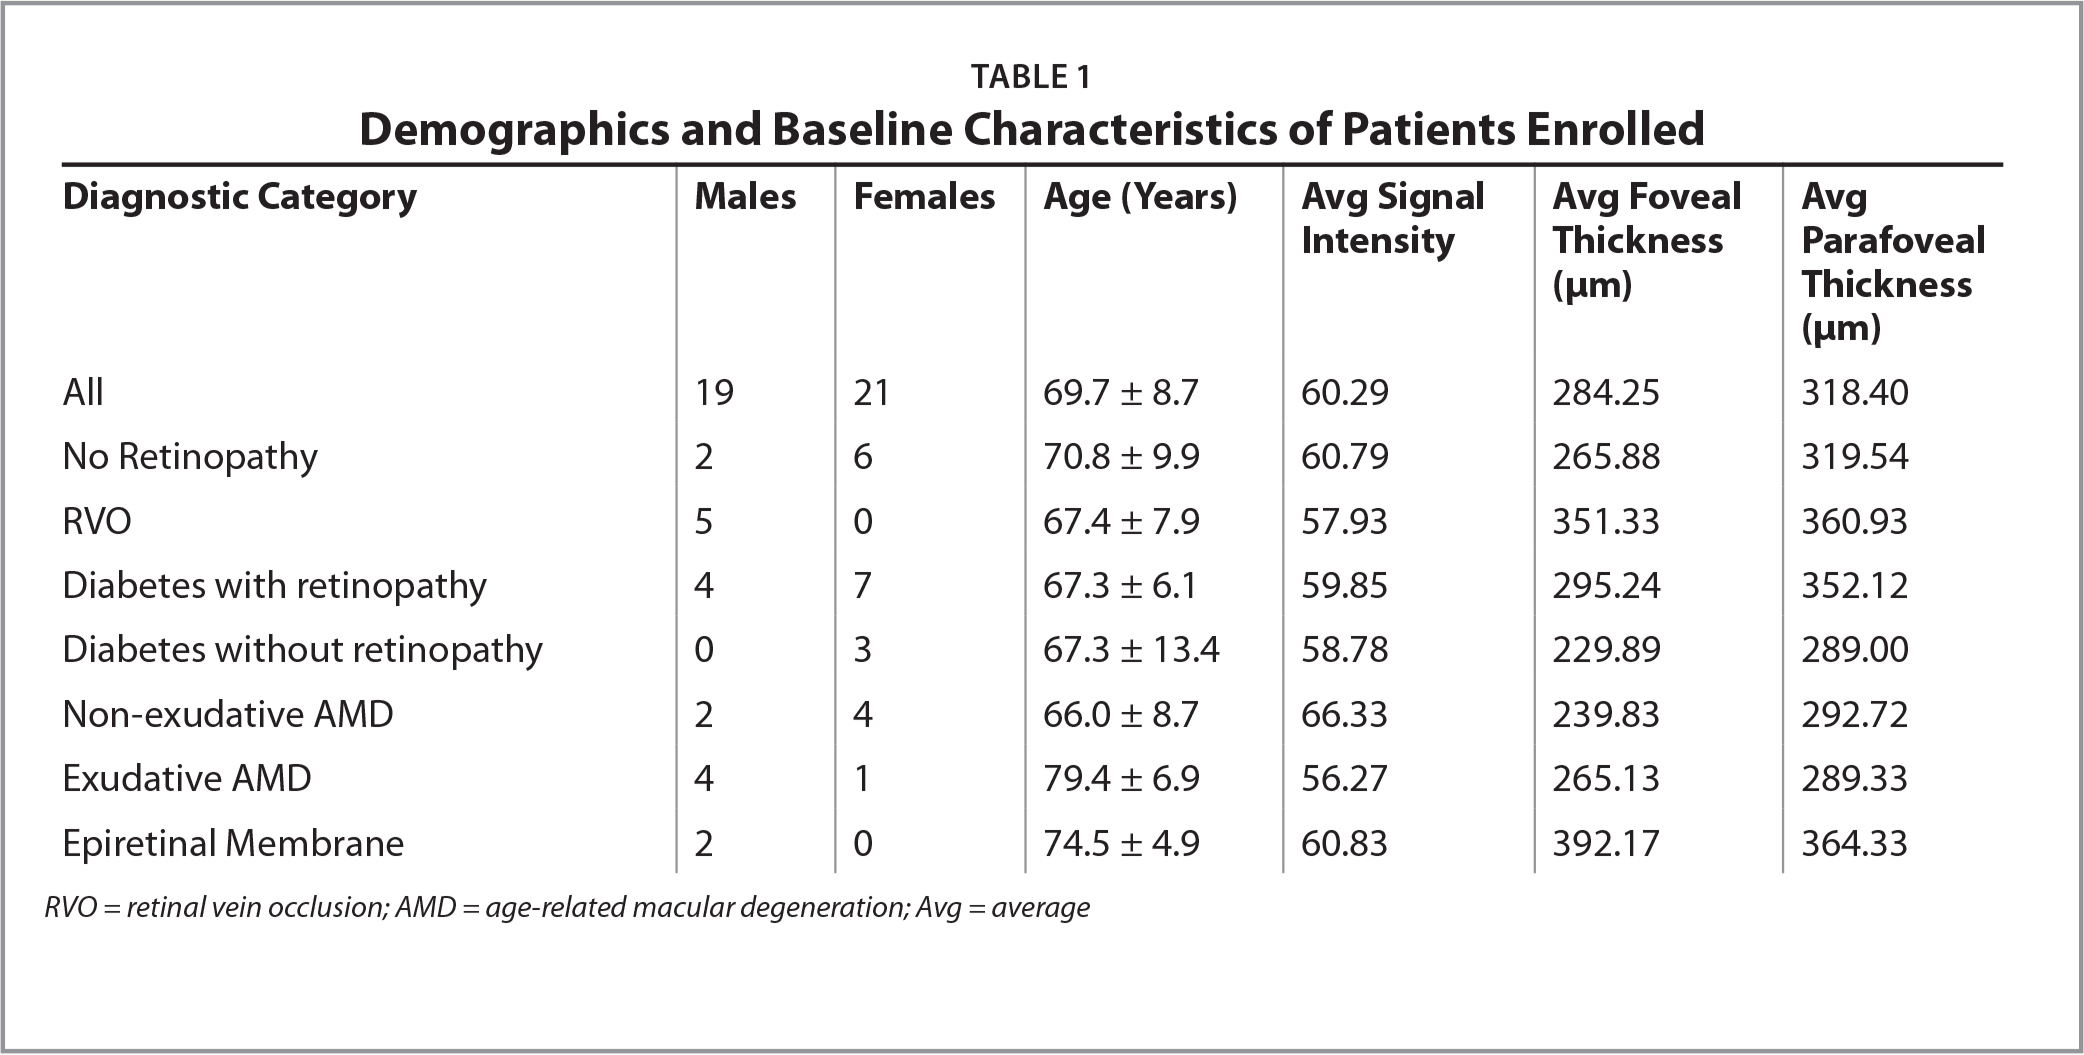 Demographics and Baseline Characteristics of Patients Enrolled